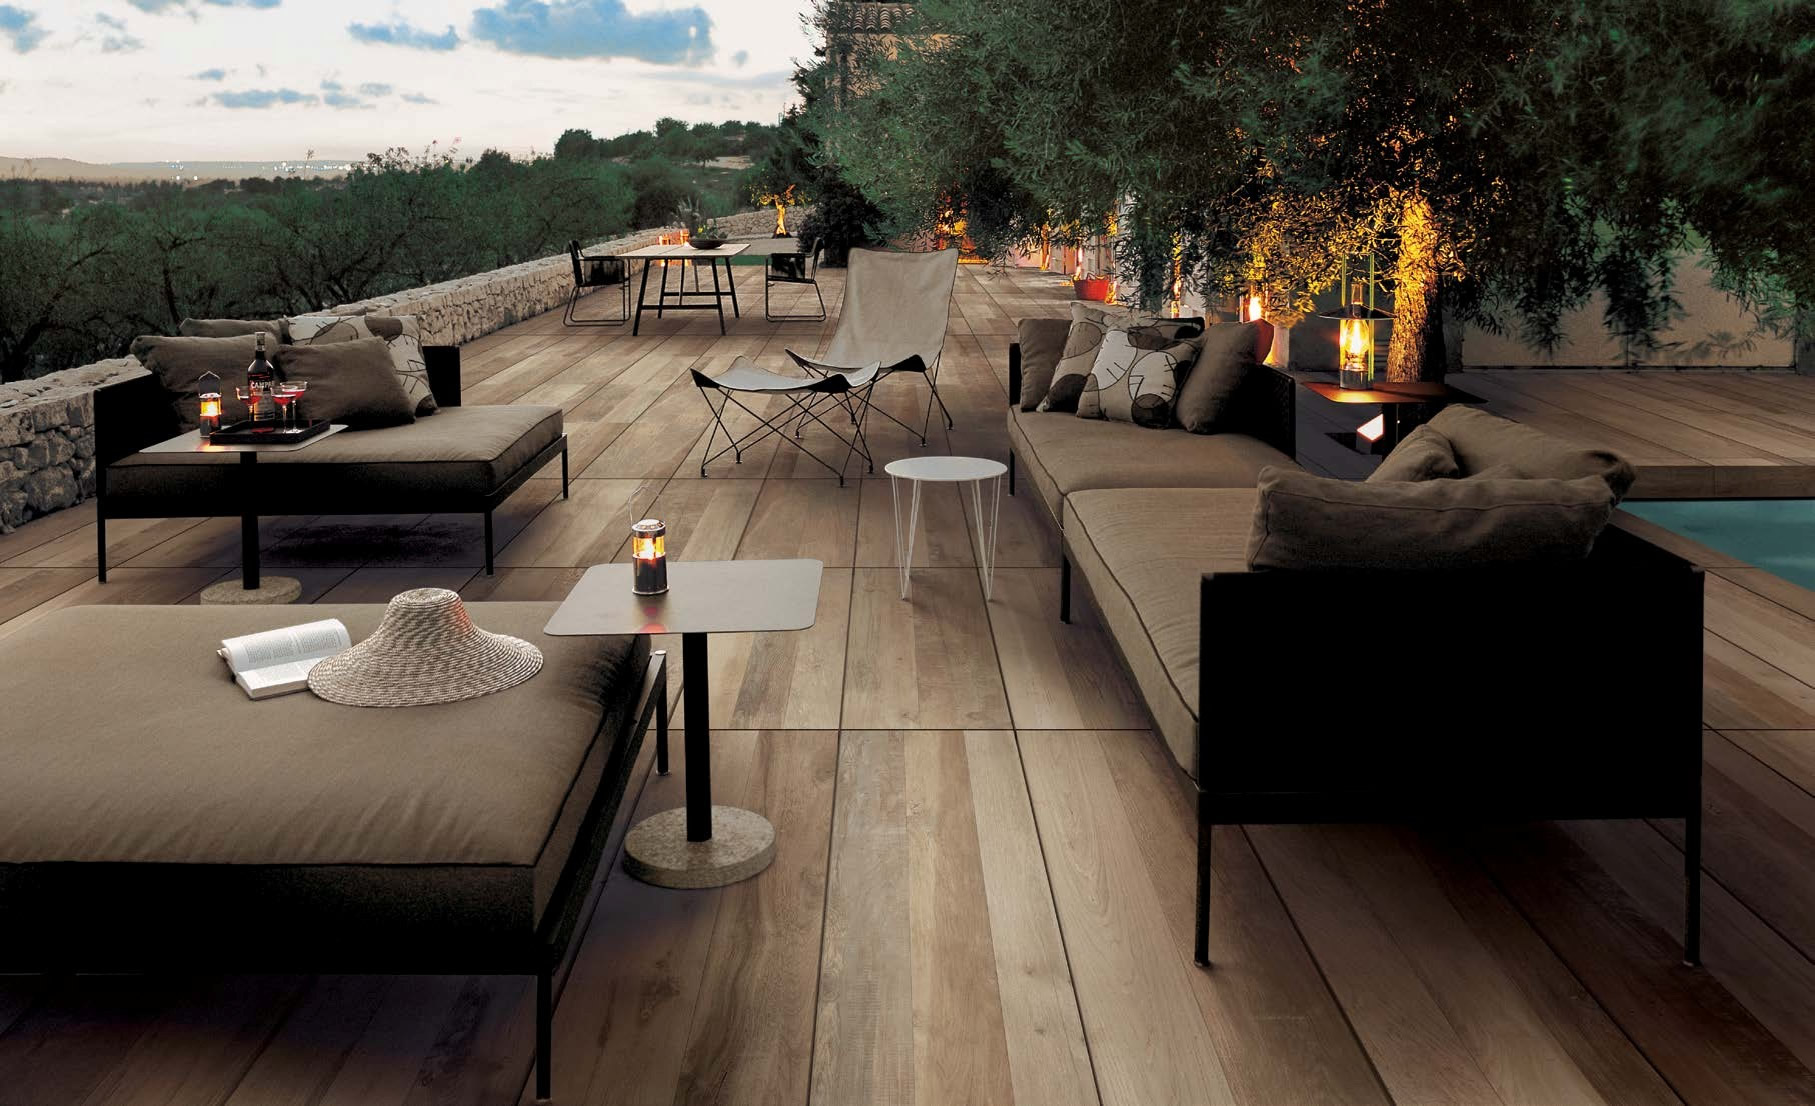 Patio In Legno Hdg Legno Wood Finish Pavers Orinda Light Hdg Building Materials